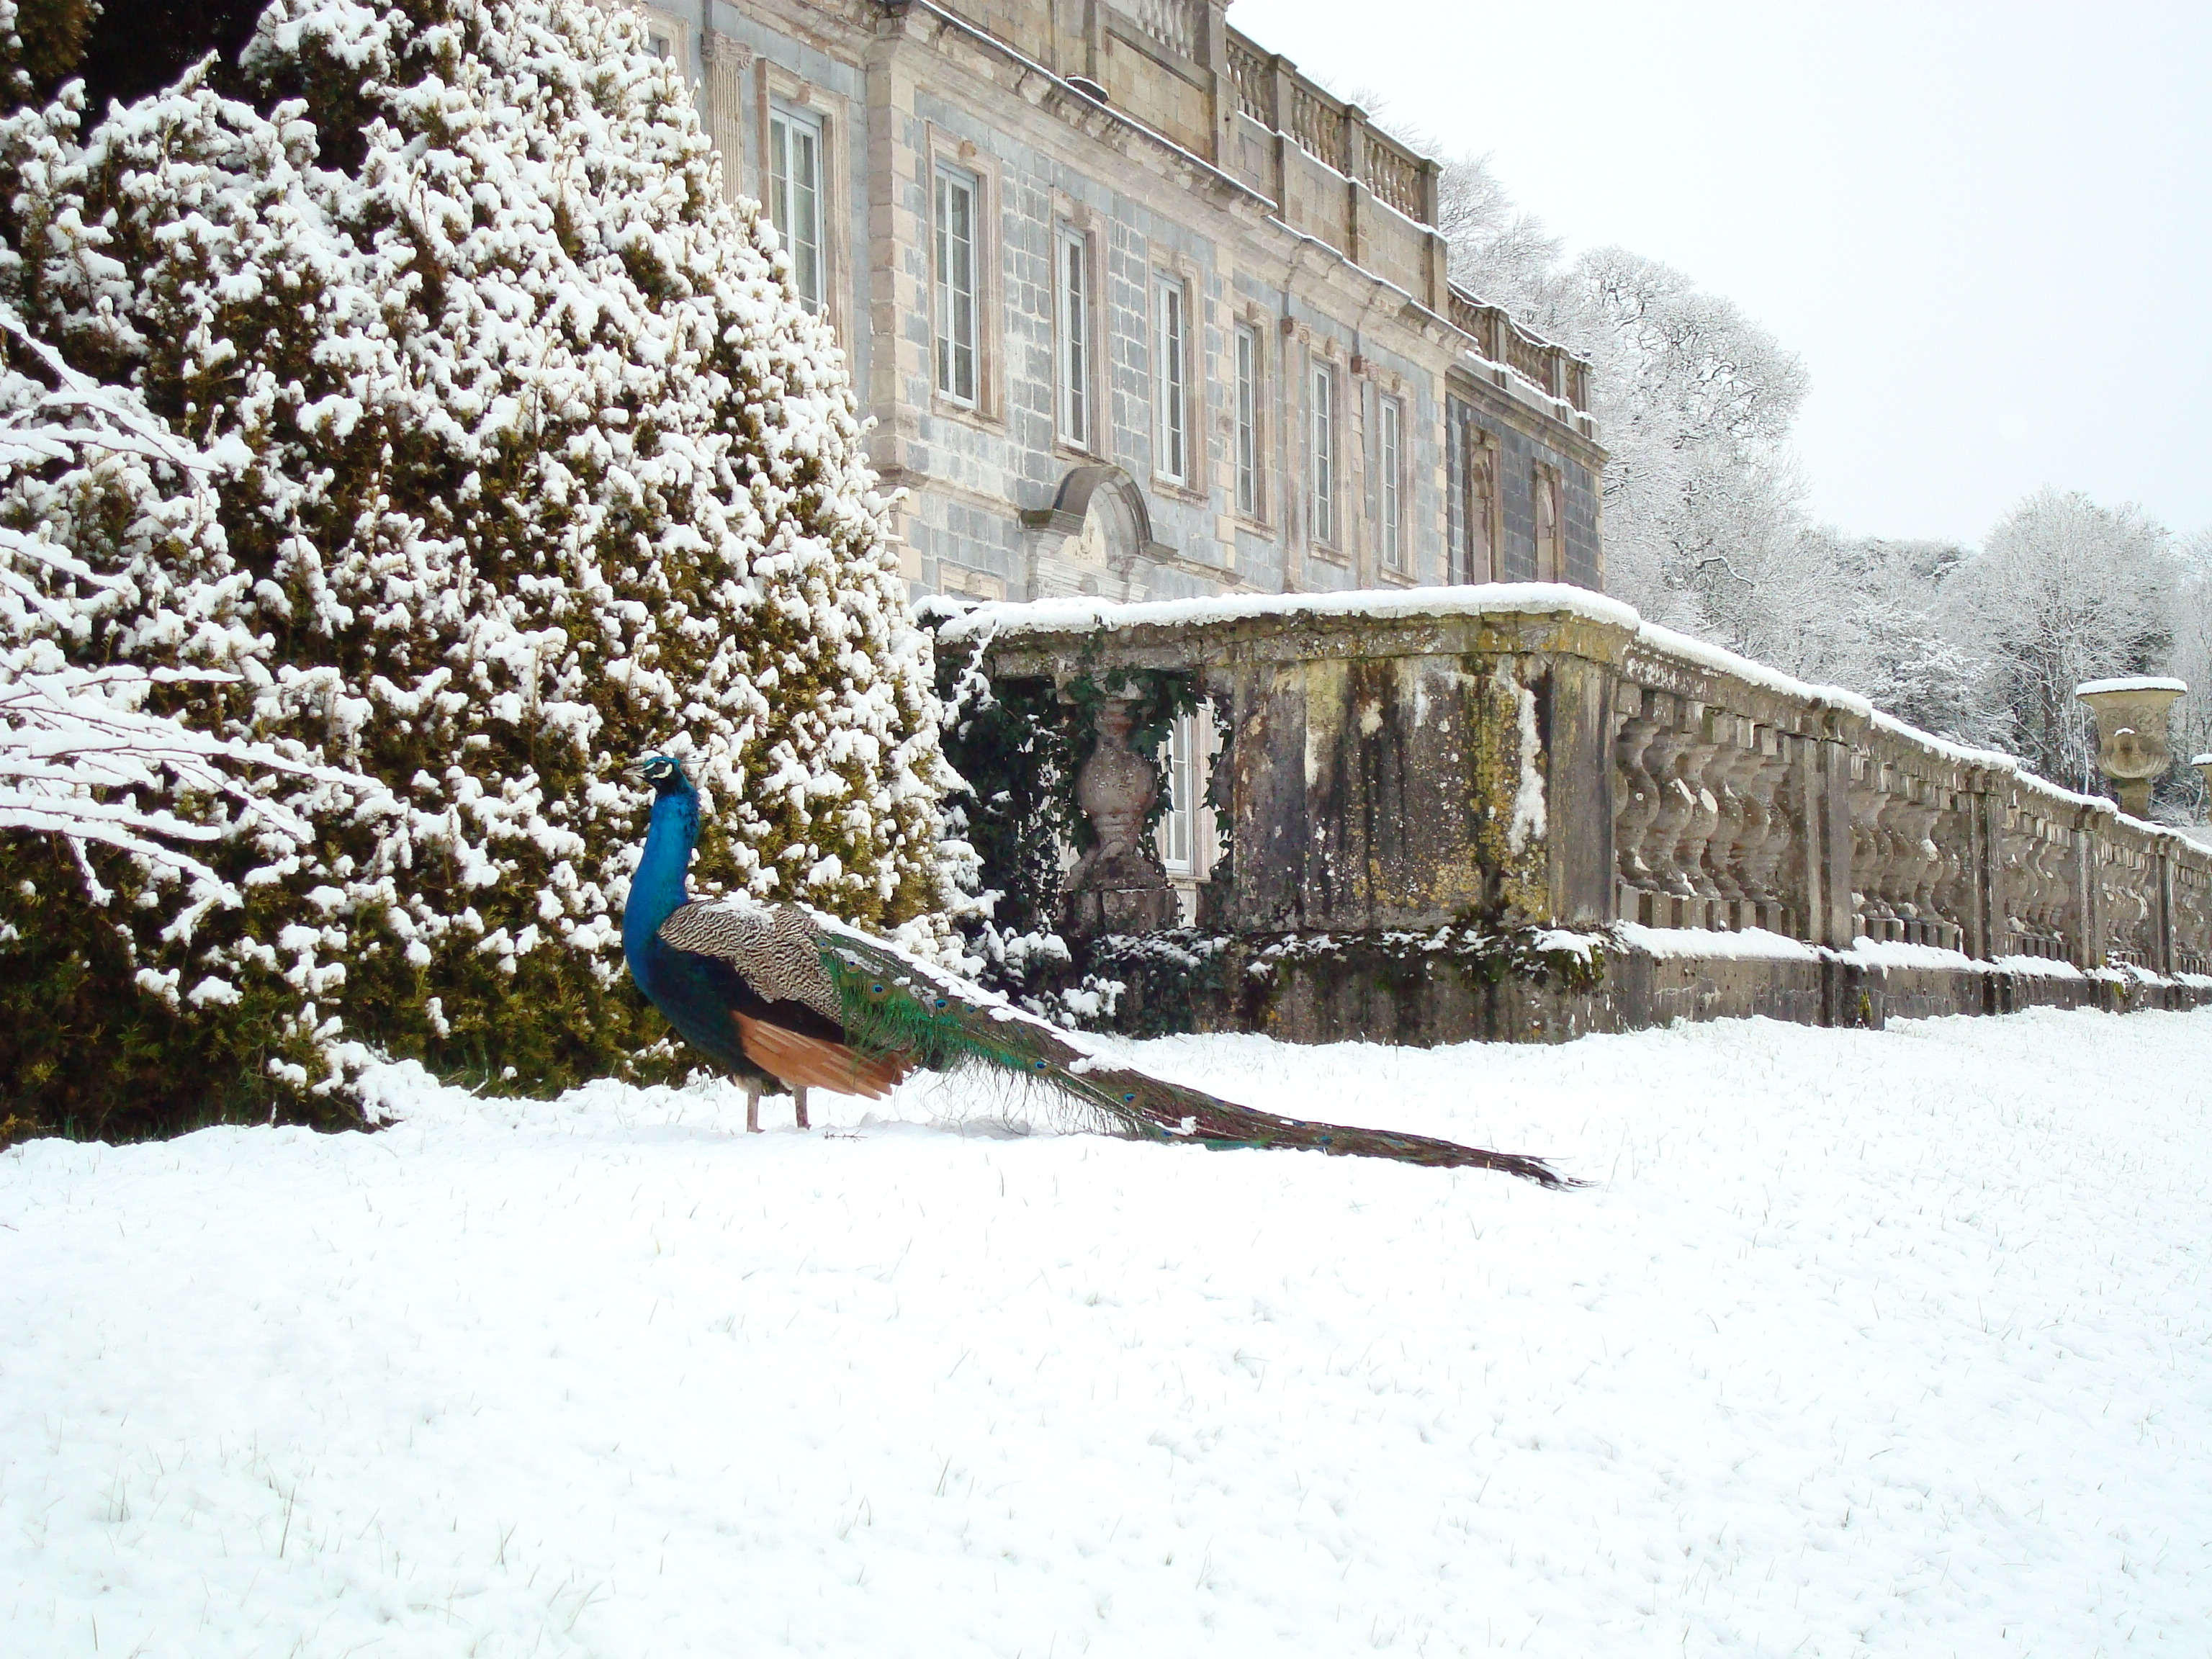 peacock in the snow at gloster house